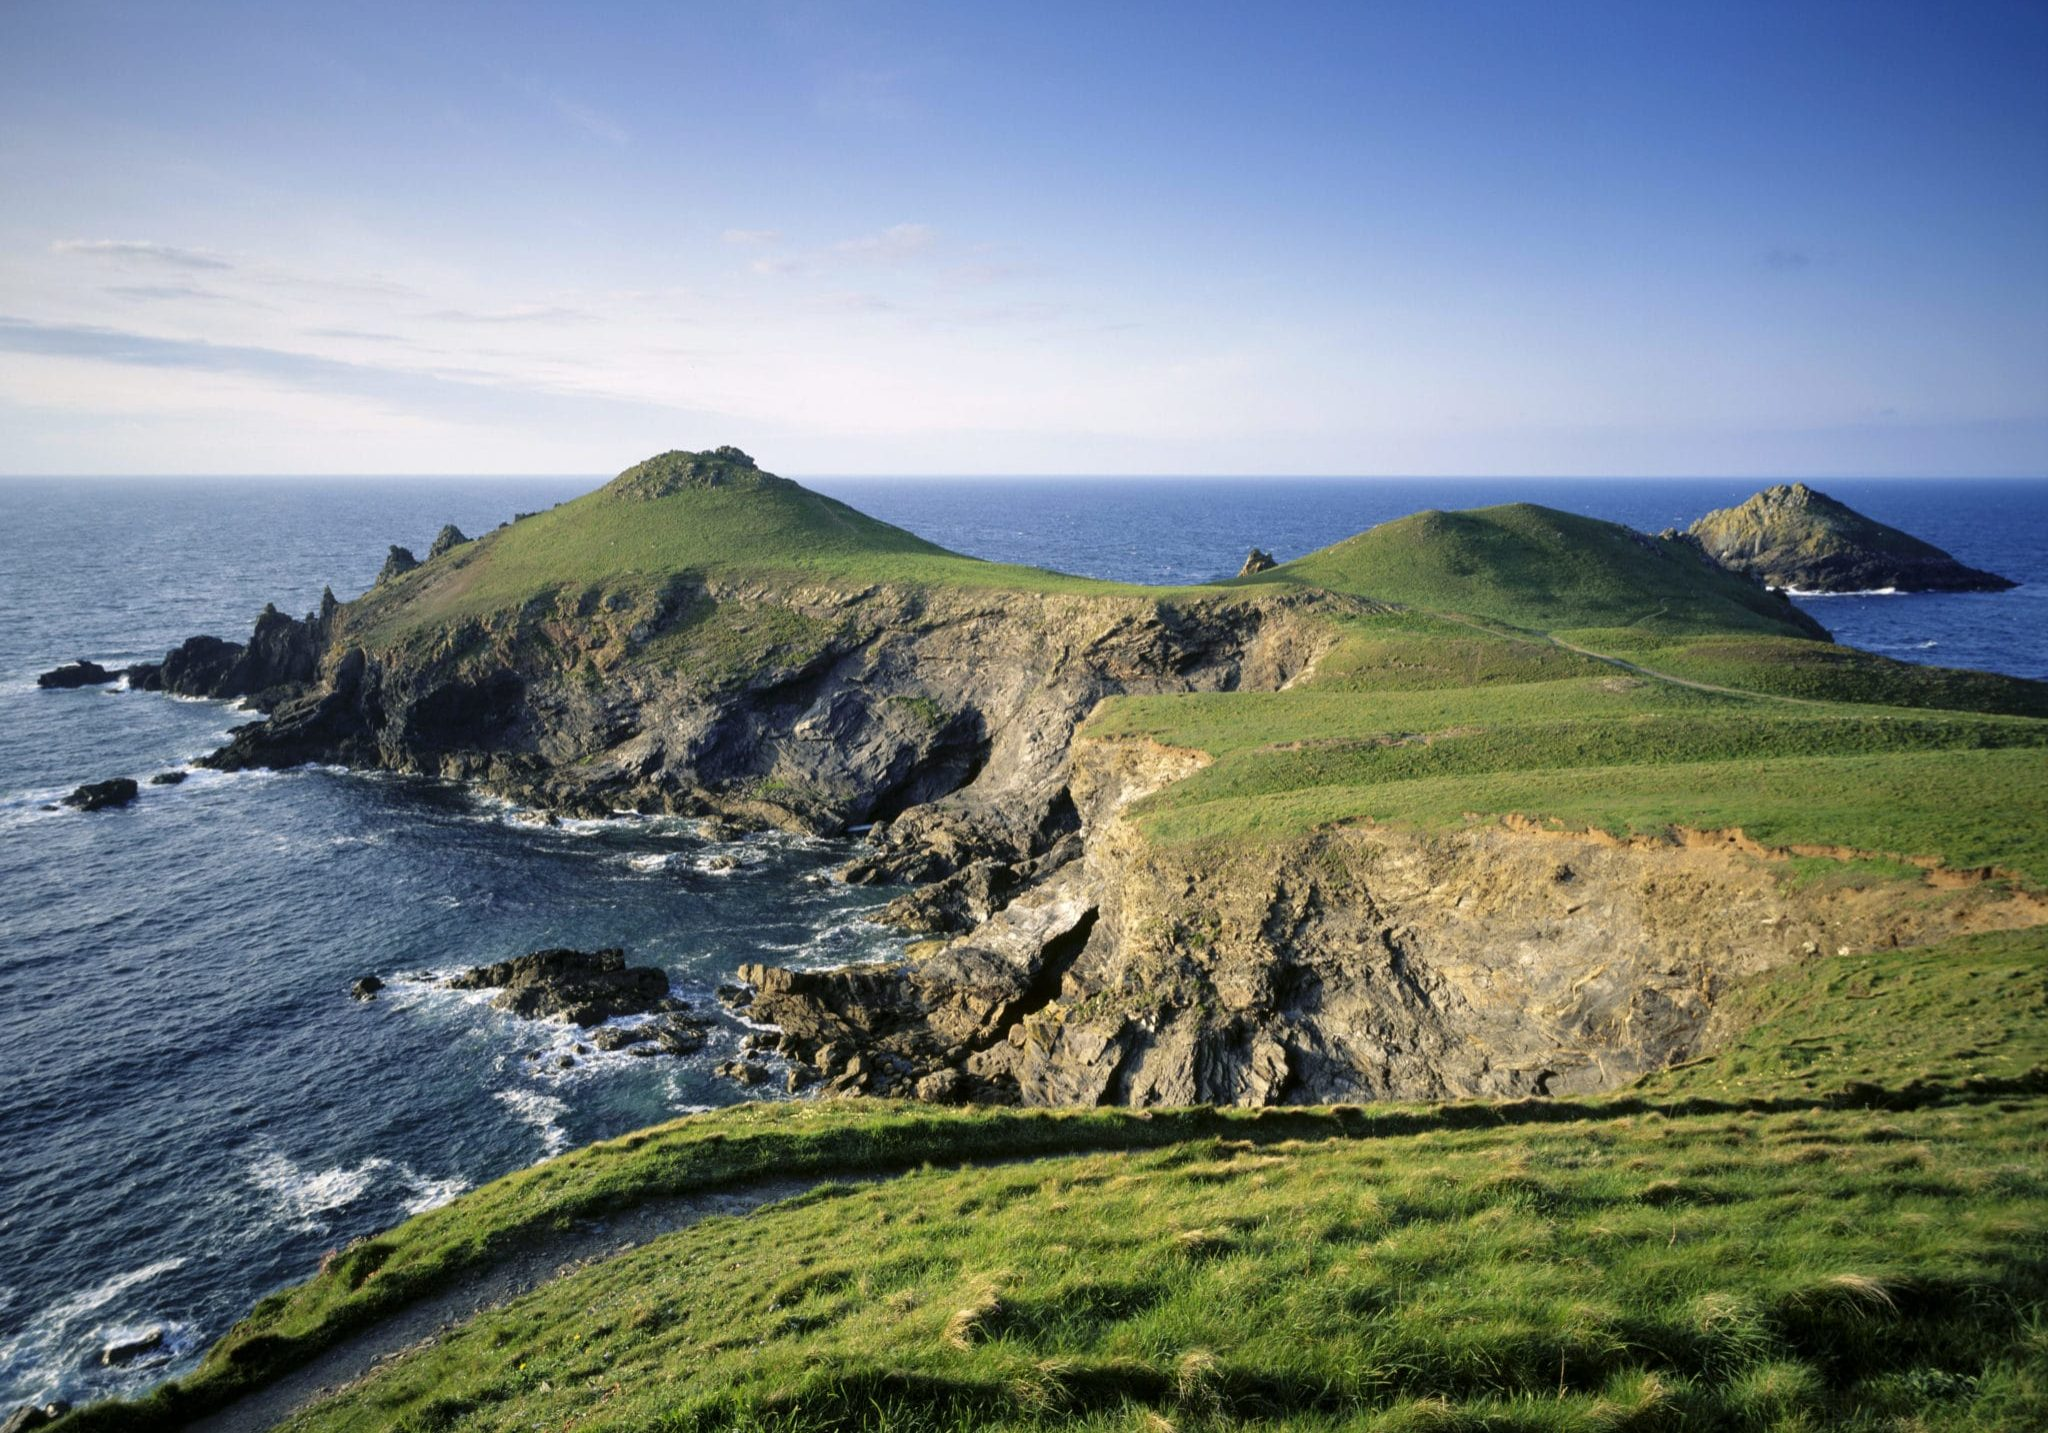 In 1935 the society raised funds to purchase Pentire Head, N Cornwall